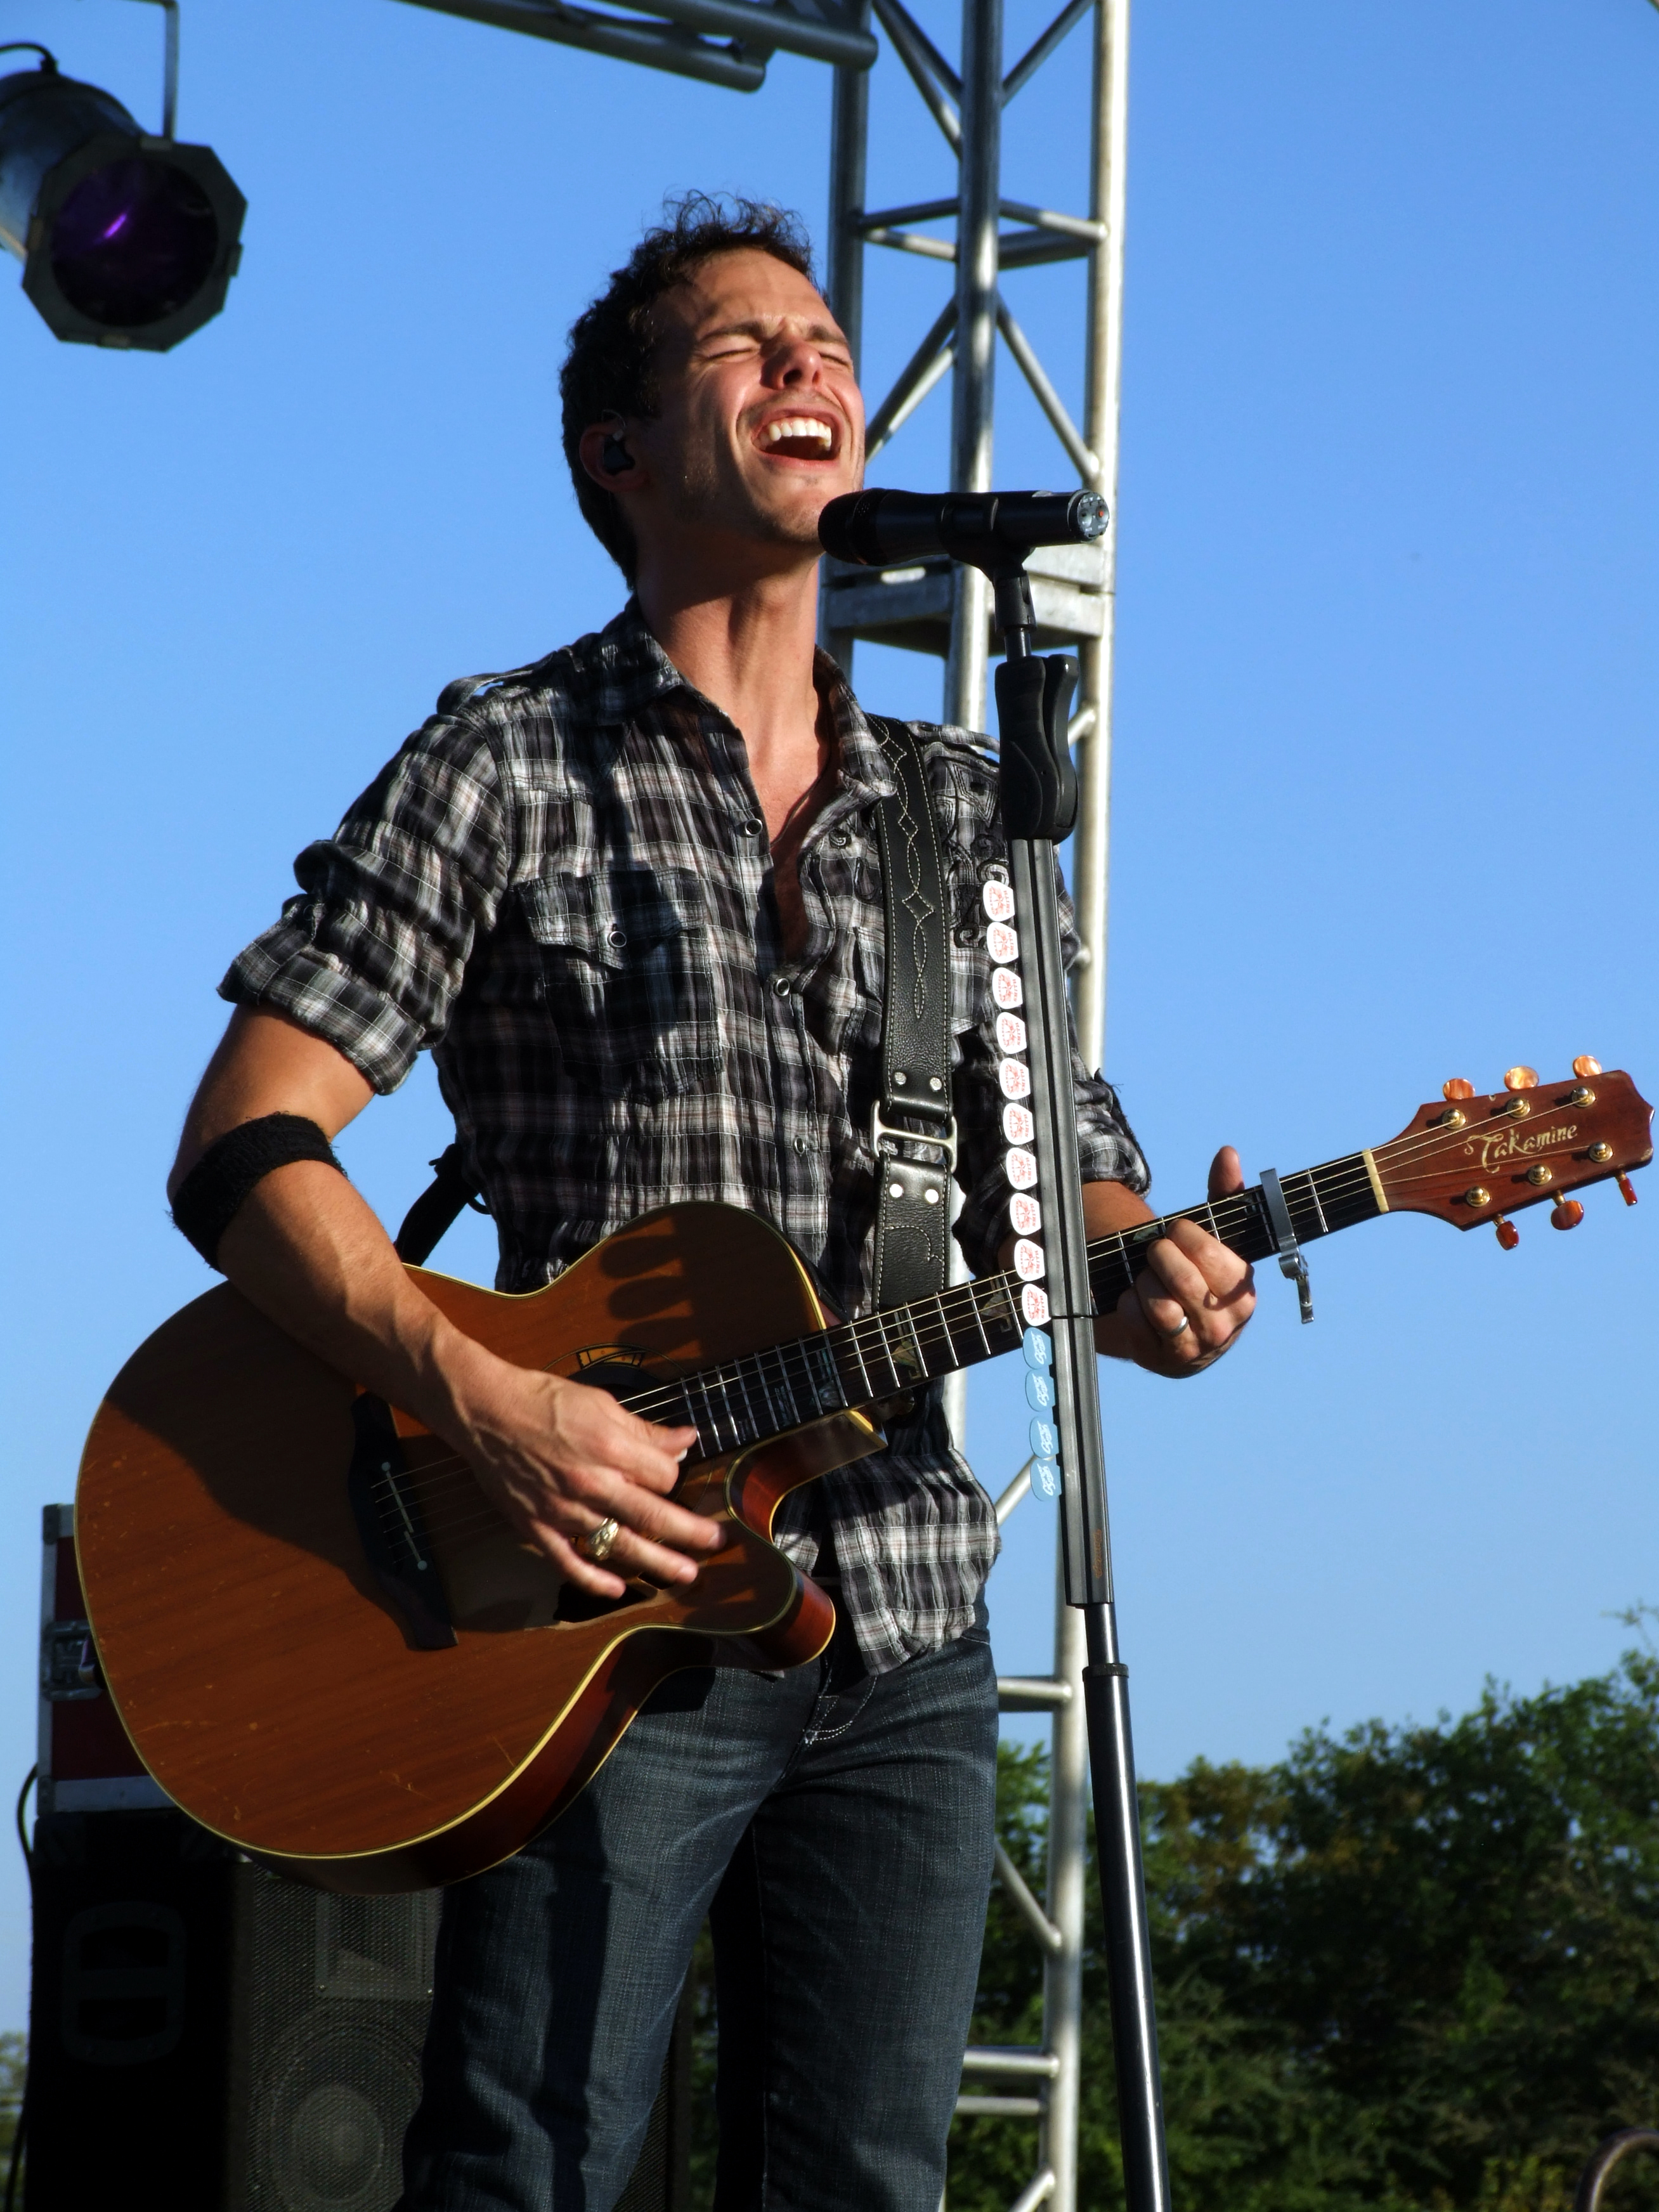 Granger Smith via InSiteAustin